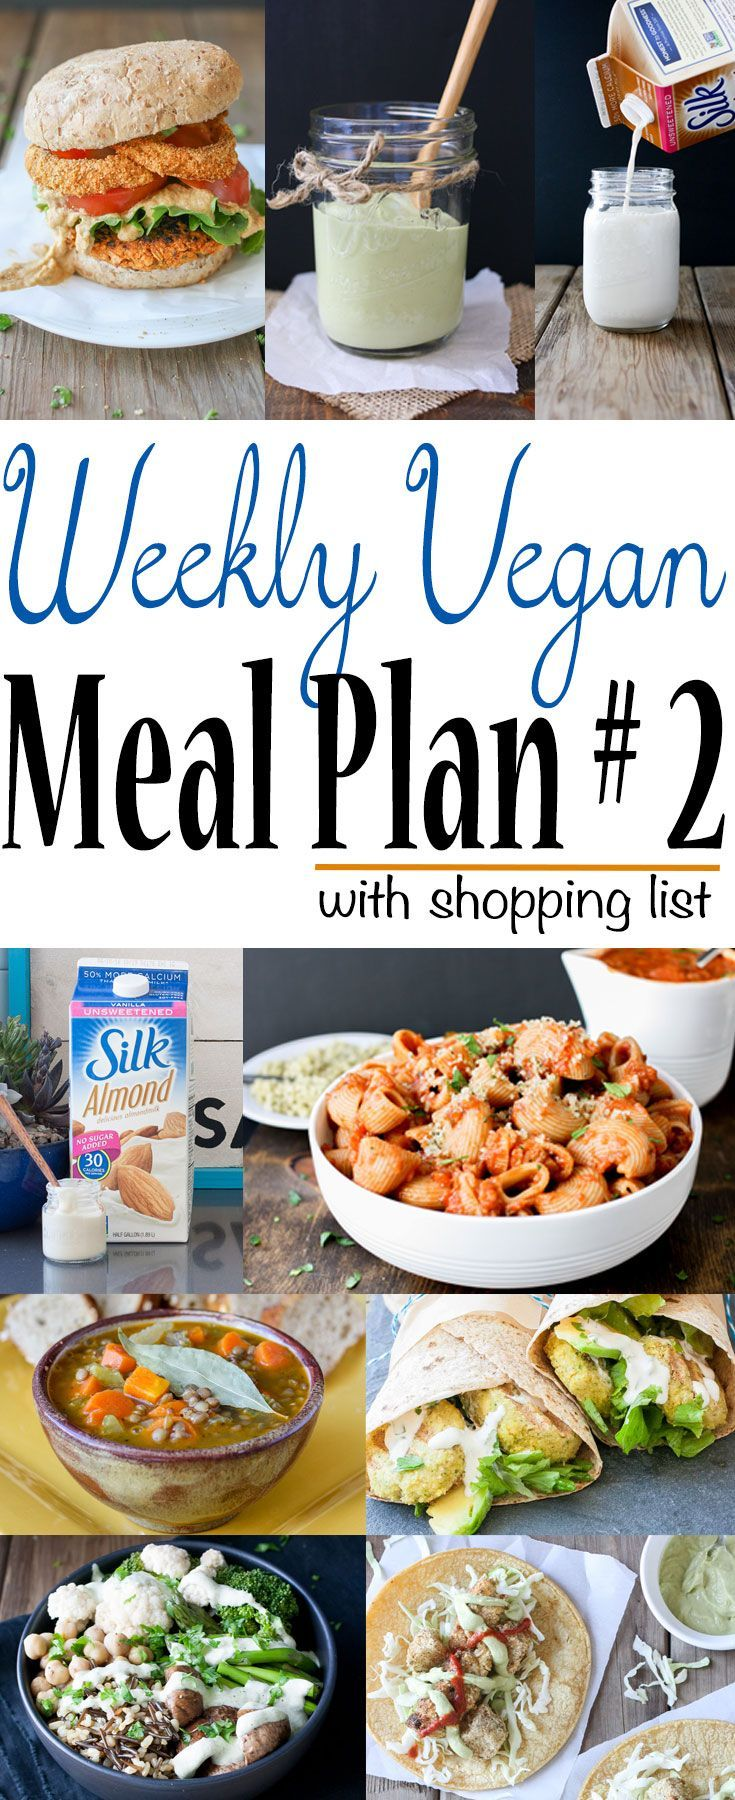 Weekly Vegan Meal Plan and Shopping List | www.veggiesdontbite.com | #vegan #plantbased #LoveMySilk #ad #glutenfree via @veggiesdontbite